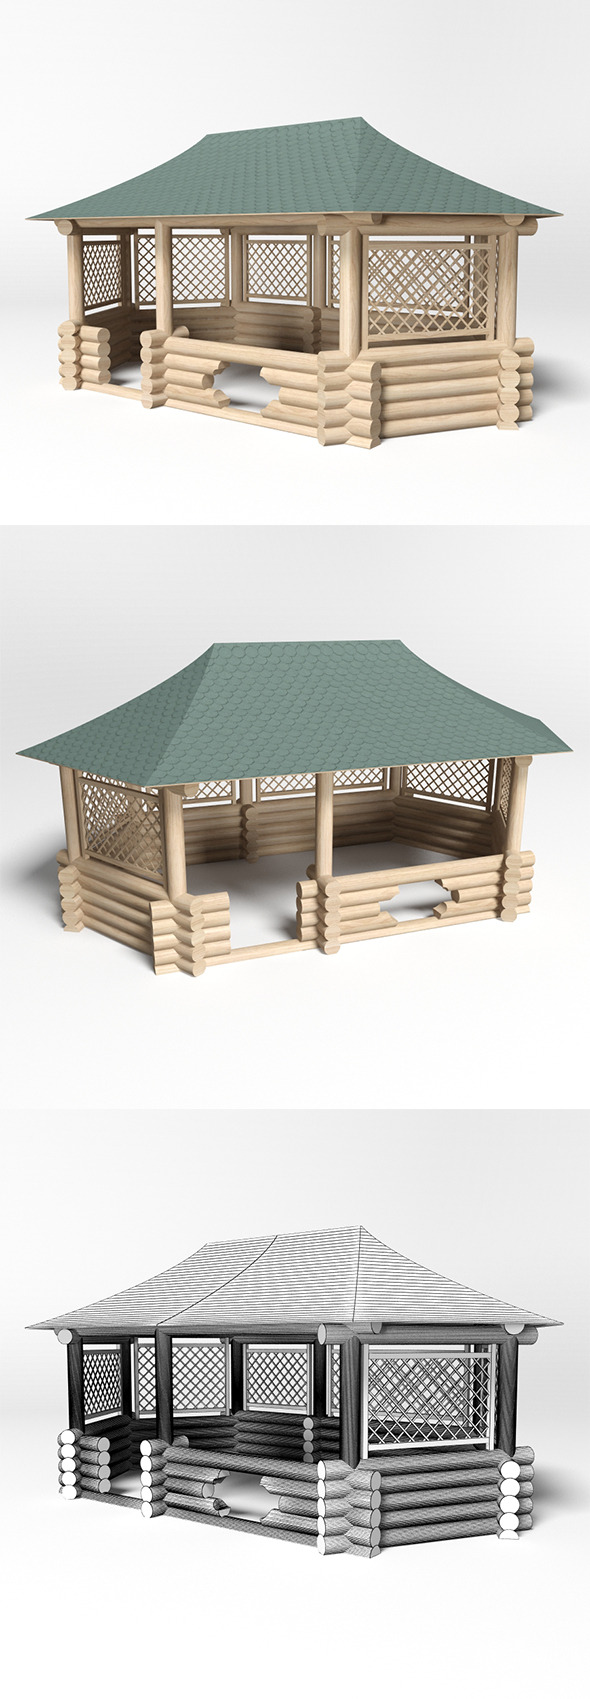 Gazebo 7 - 3DOcean Item for Sale